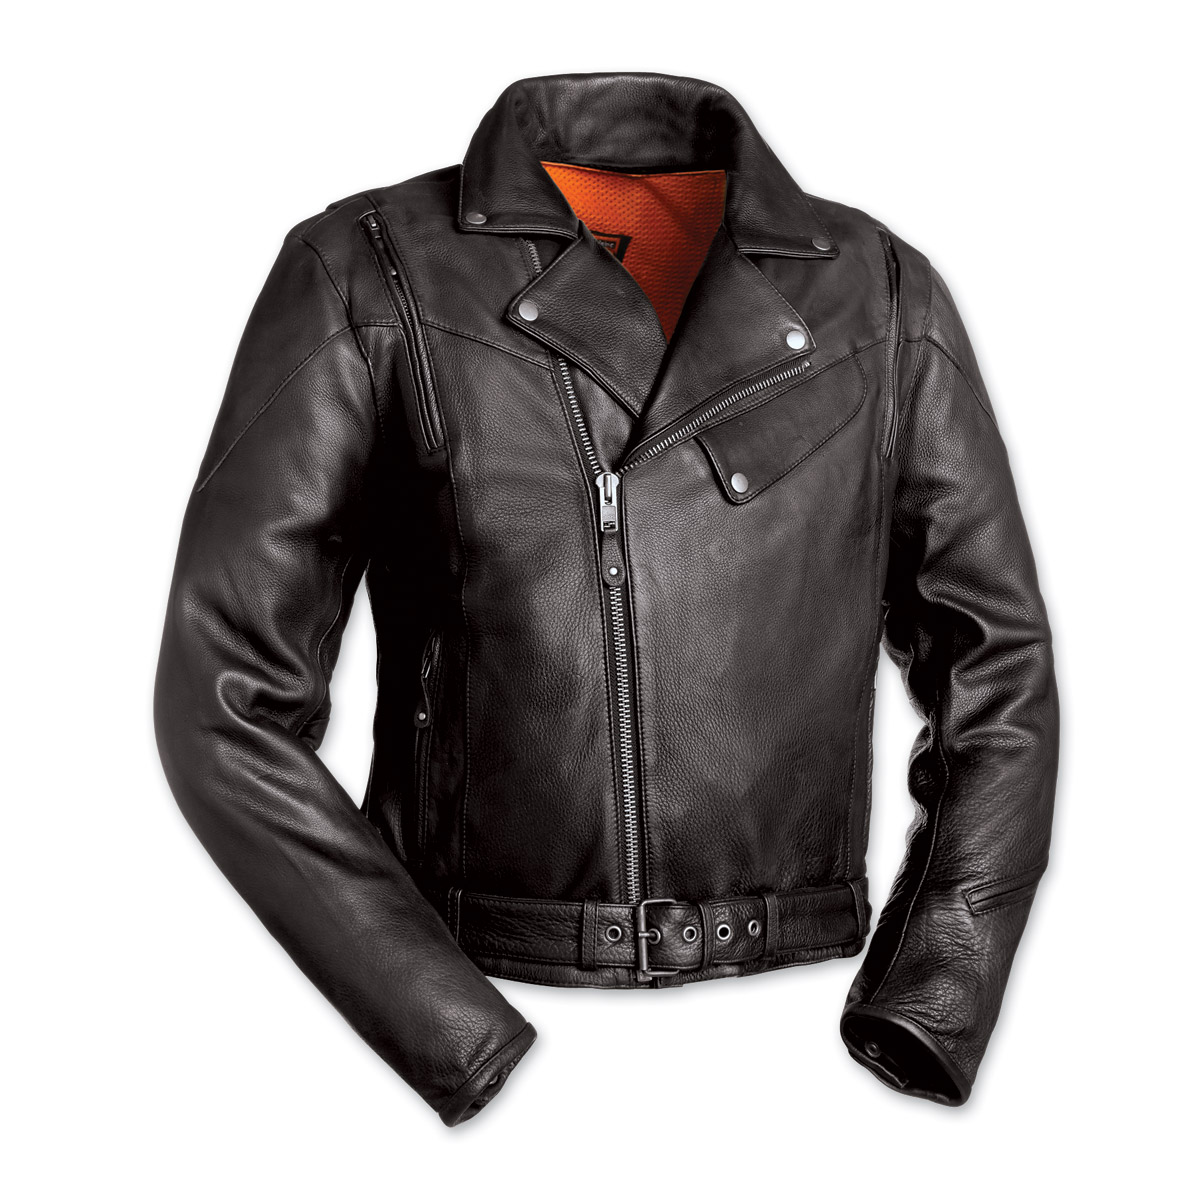 Leather jacket review